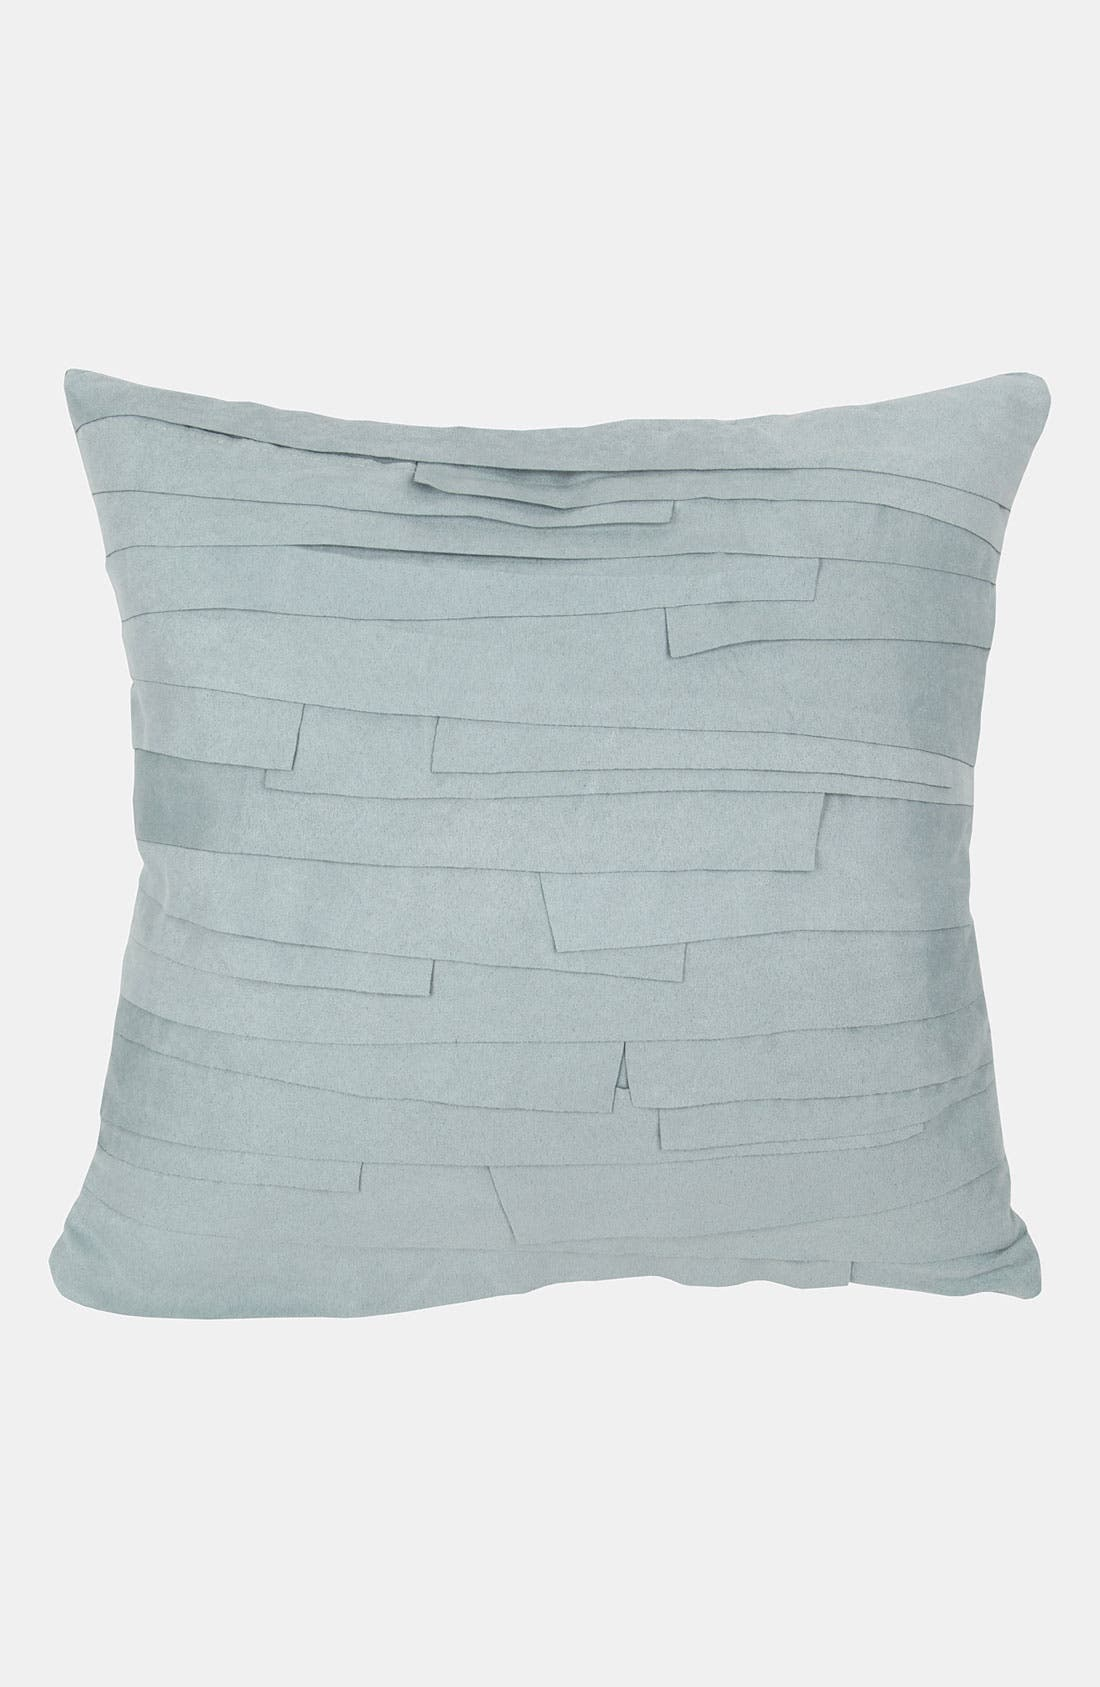 Alternate Image 1 Selected - Blissliving Home 'Yves' Pillow (Online Only)